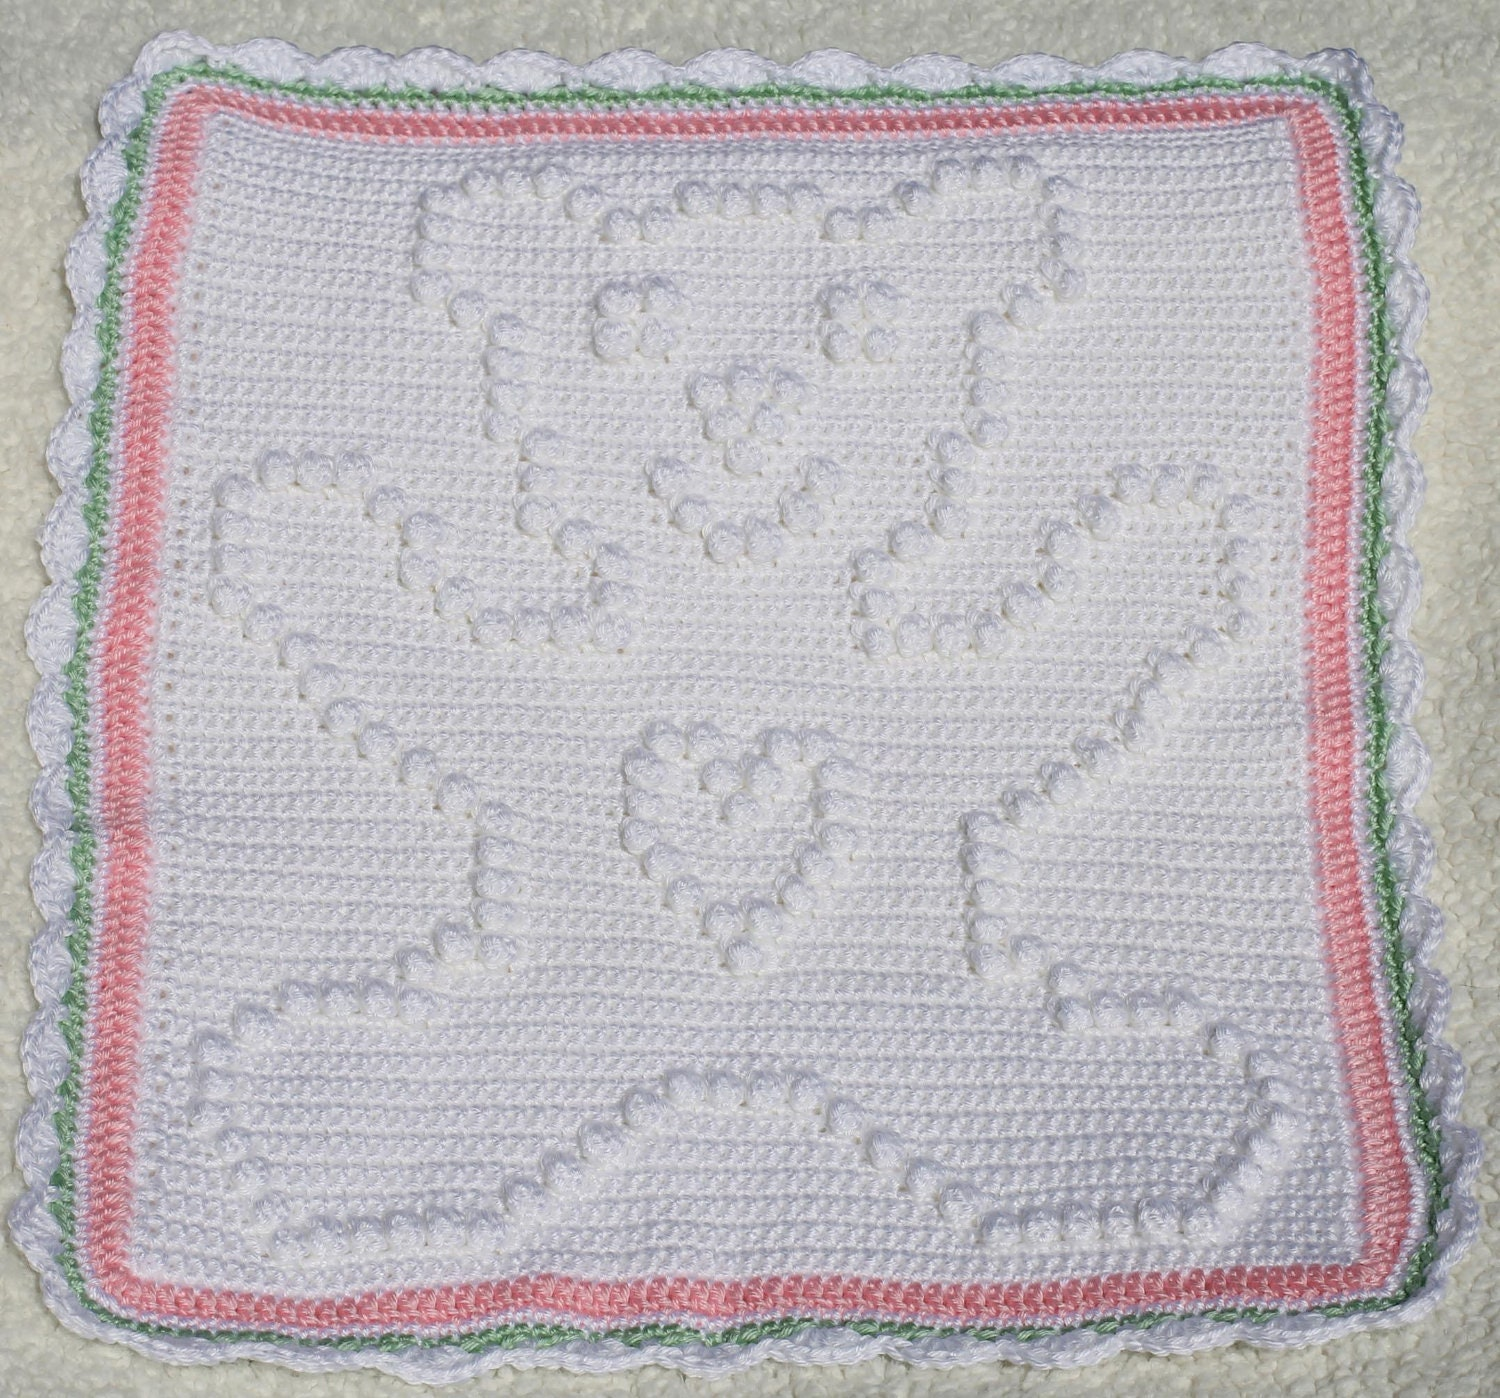 Crochet Pattern - Crochet Baby Security Blanket - Baby Snuggle ...